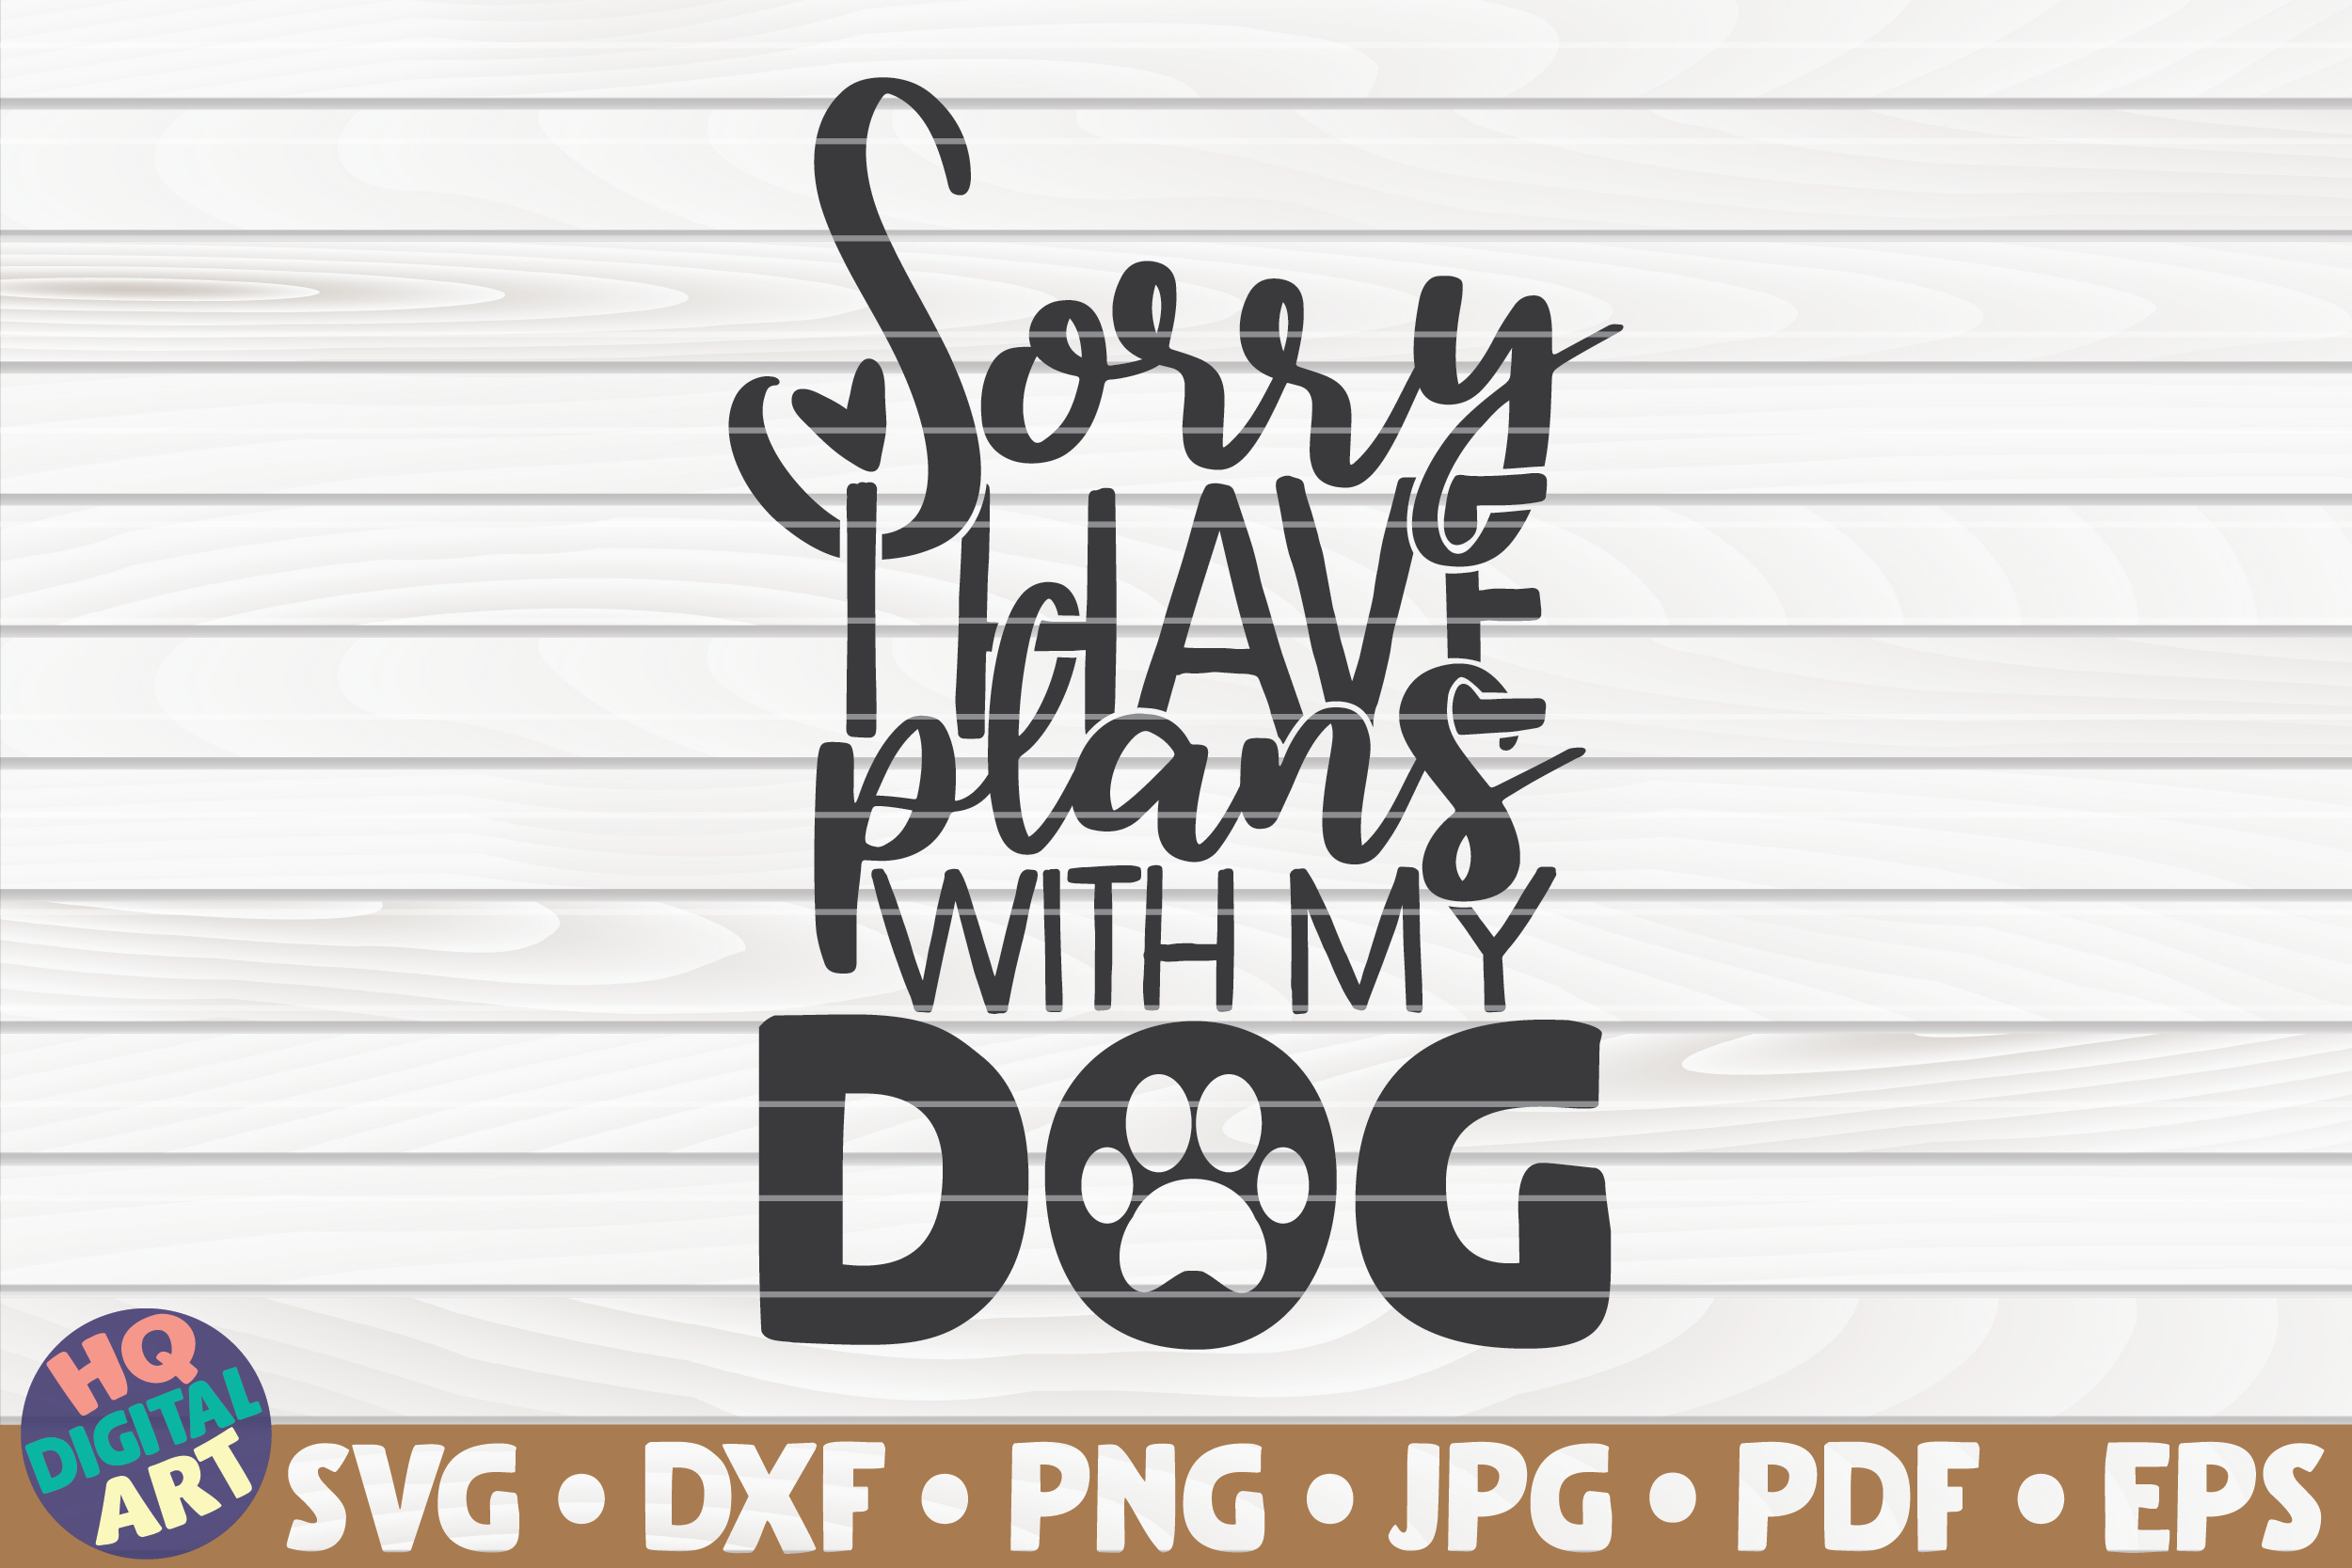 Download Free Sorry I Have Plans With My Dog Graphic By Mihaibadea95 for Cricut Explore, Silhouette and other cutting machines.